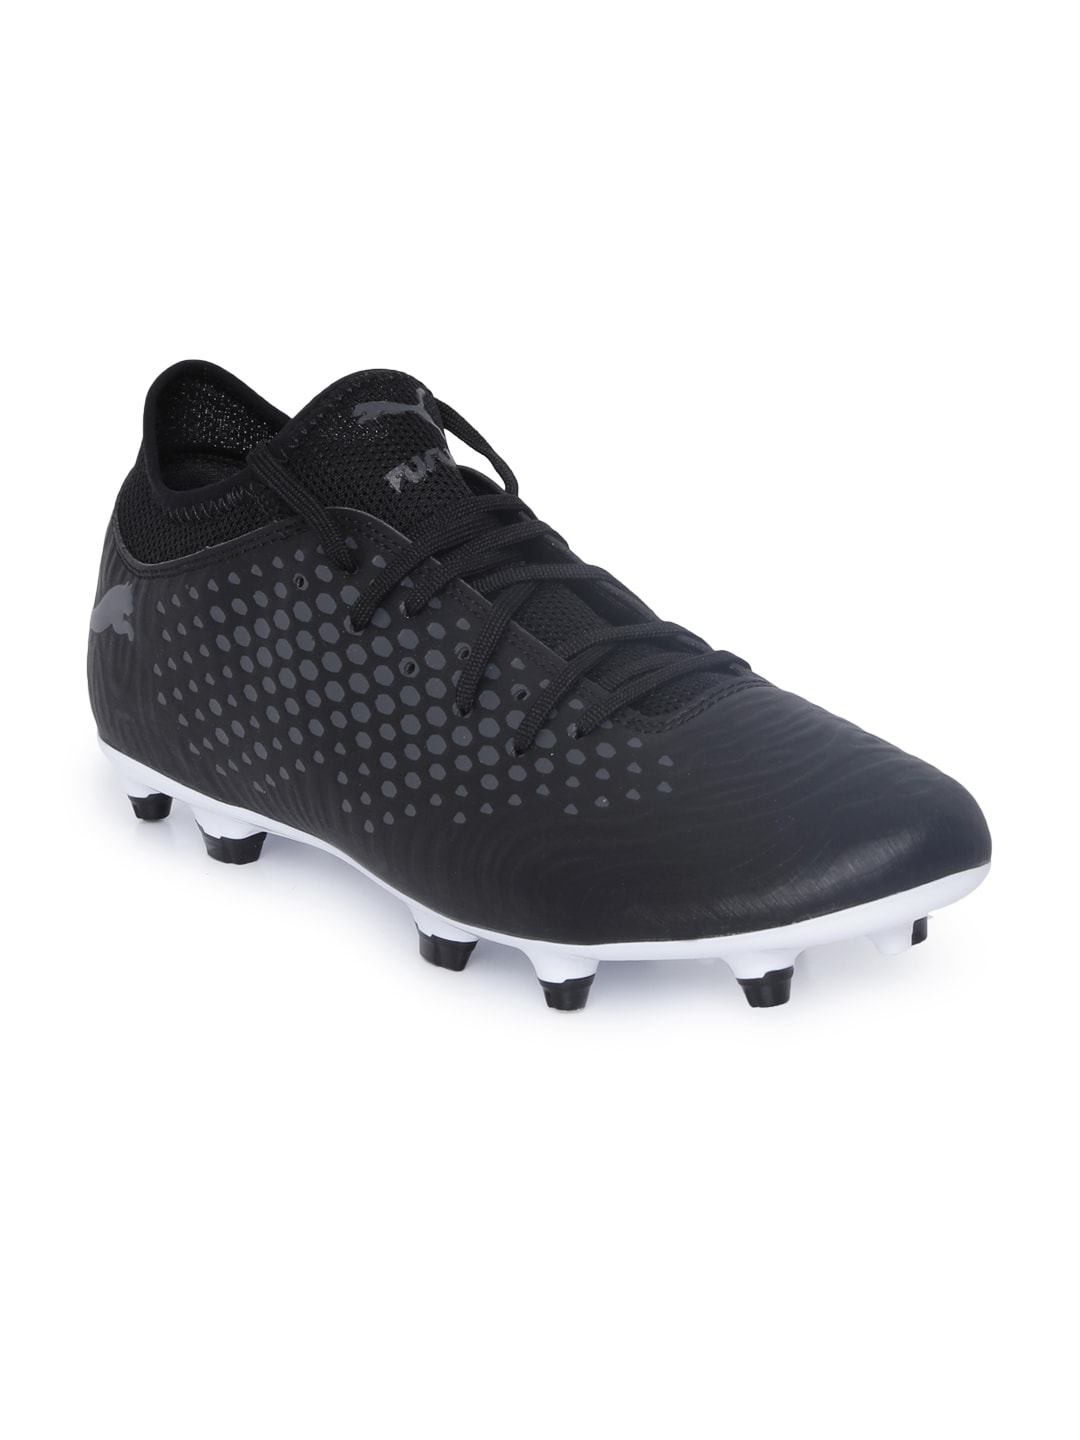 Football Shoes - Buy Football Studs Online for Men   Women in India f3ba7a997